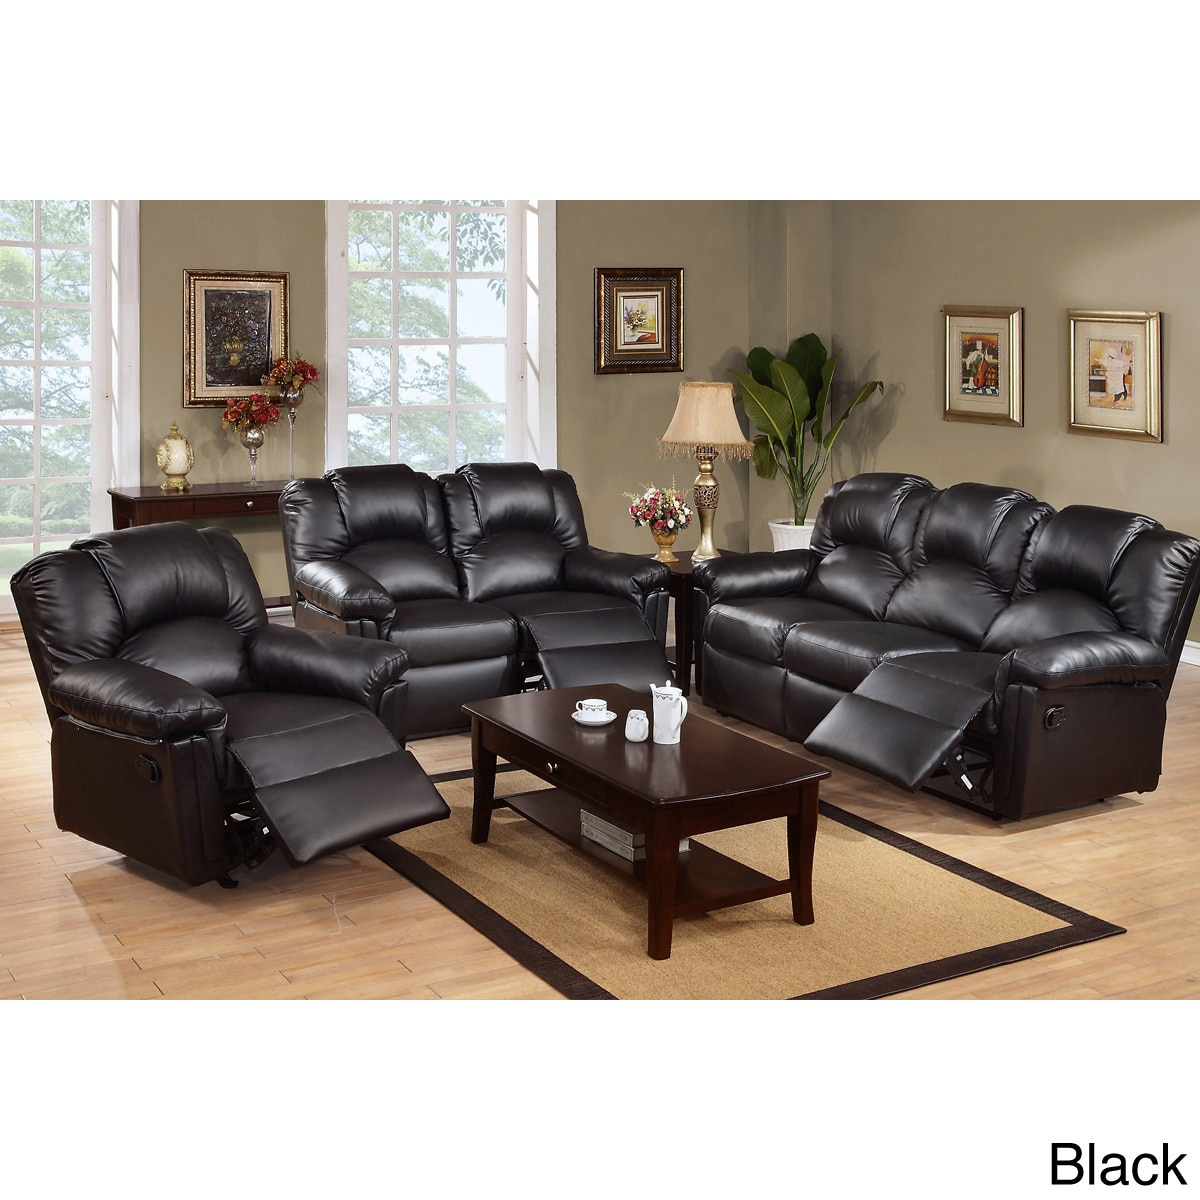 Grele Bonded Leather Reclining Living Room Set Free Shipping Today 9052228